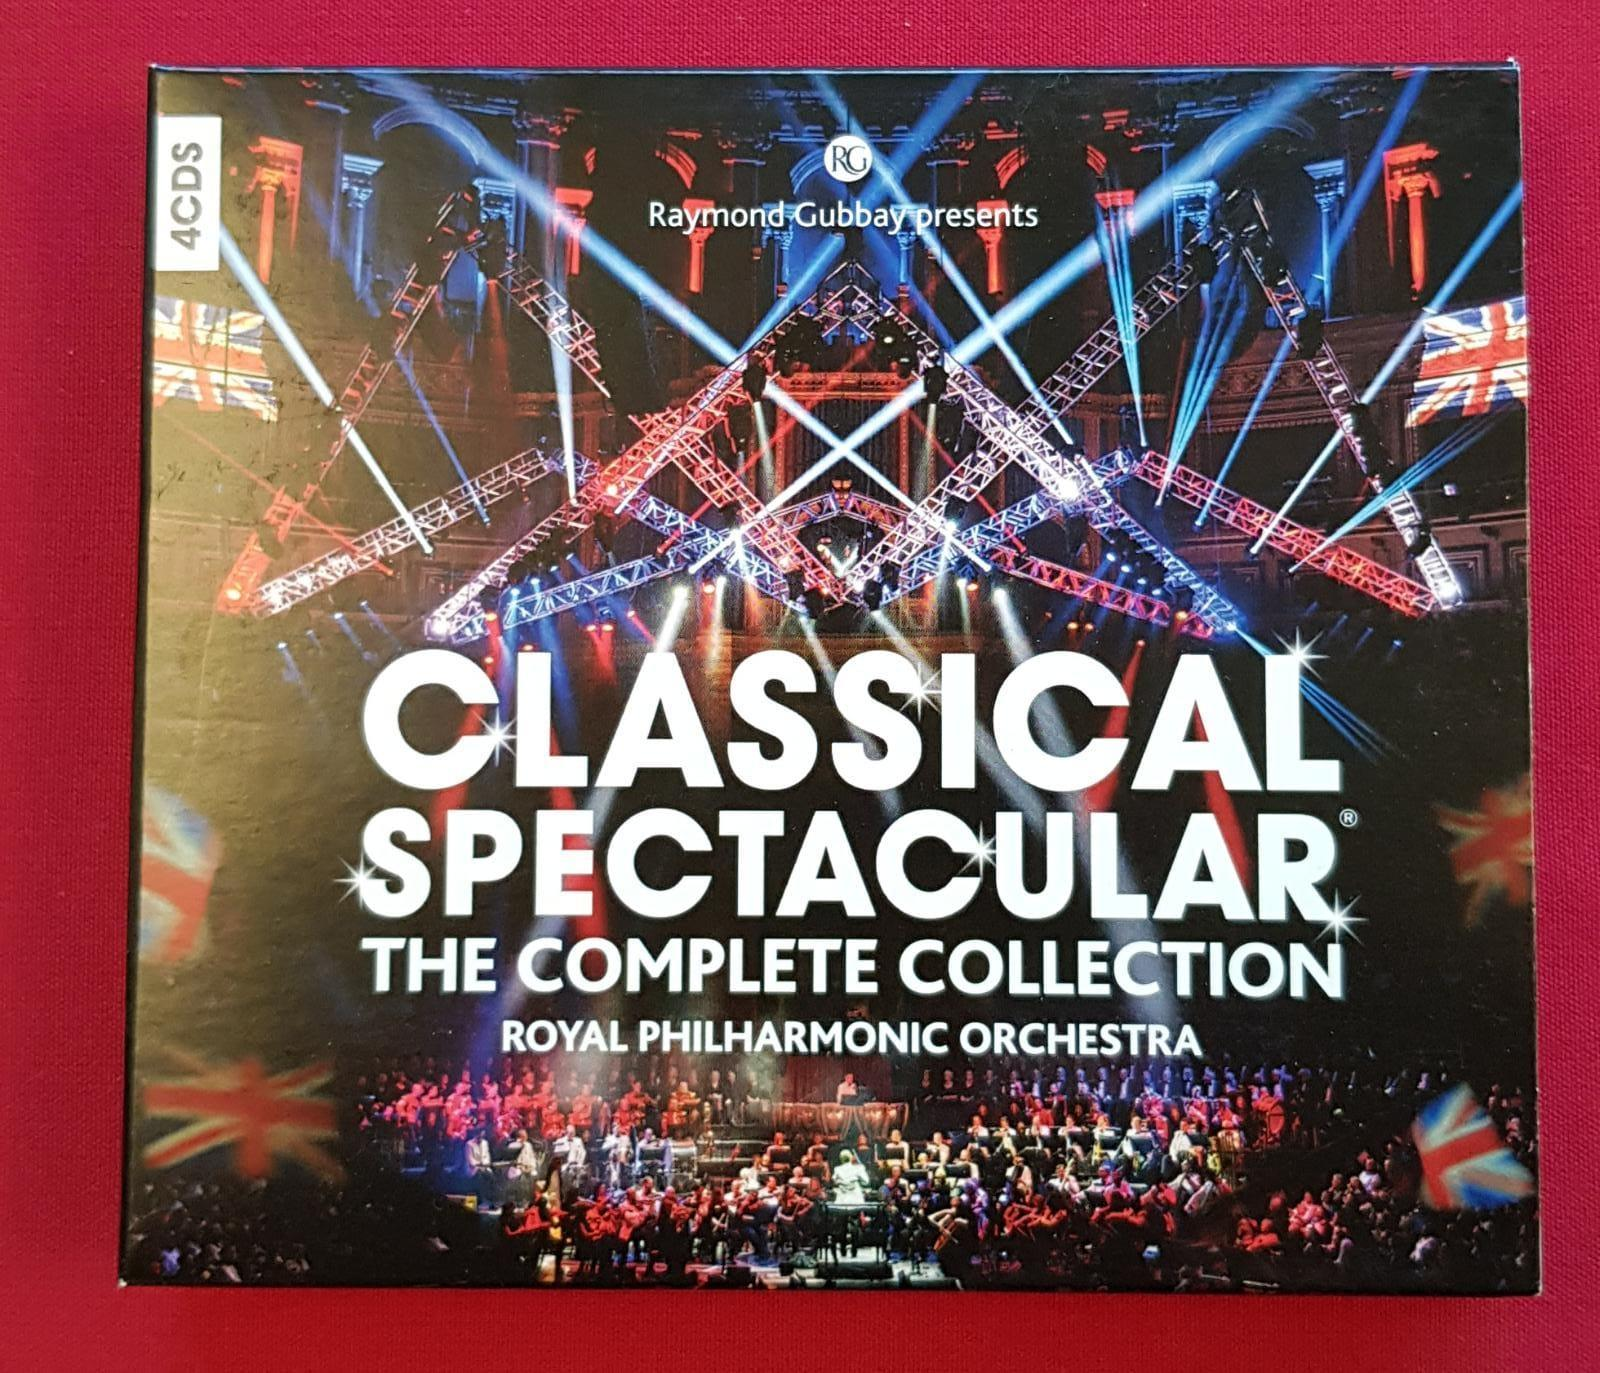 Classical Spectacular [Best Of] Vol 1 & 2 [4CD] - Royal